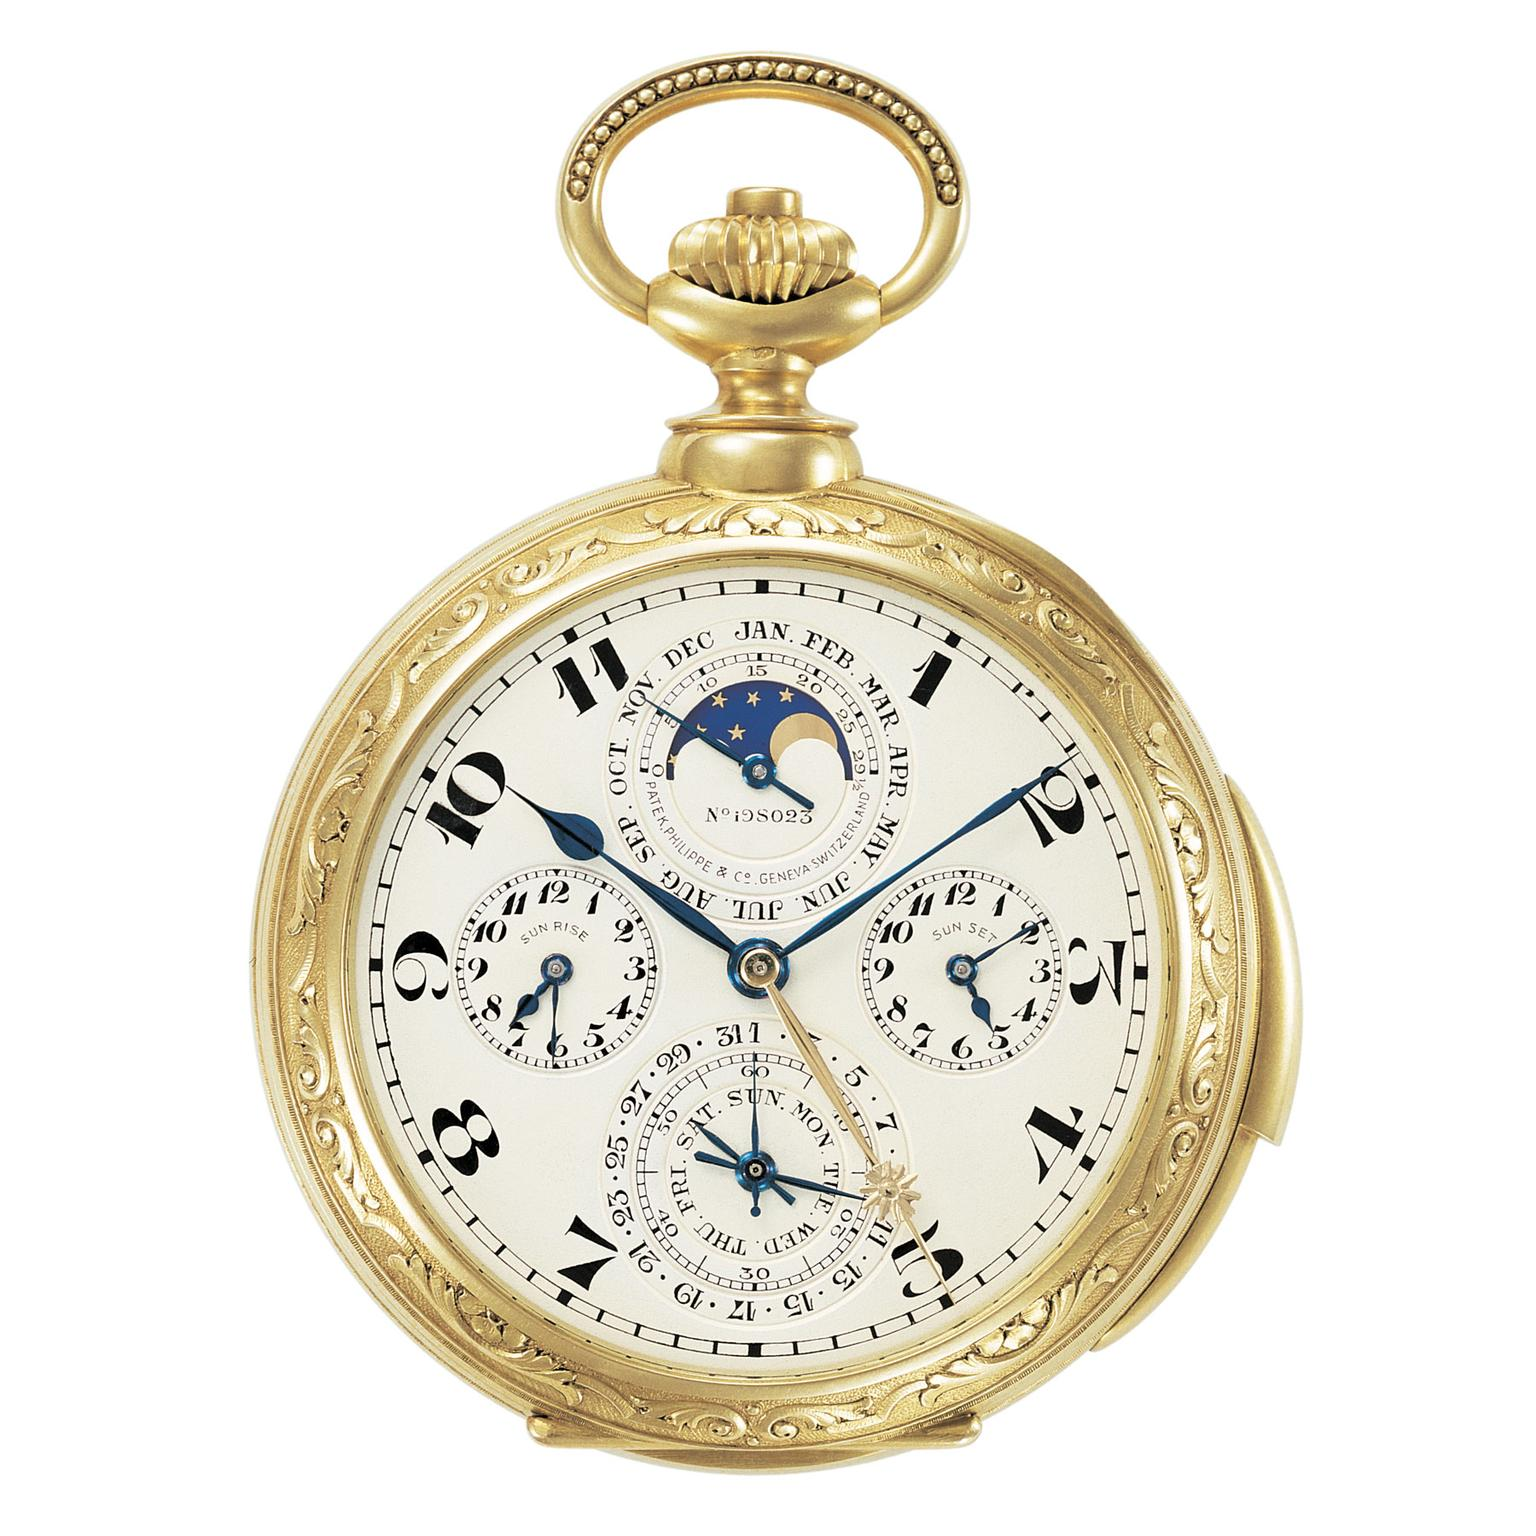 James Ward Packard's Astronomical Pocket Watch 1925